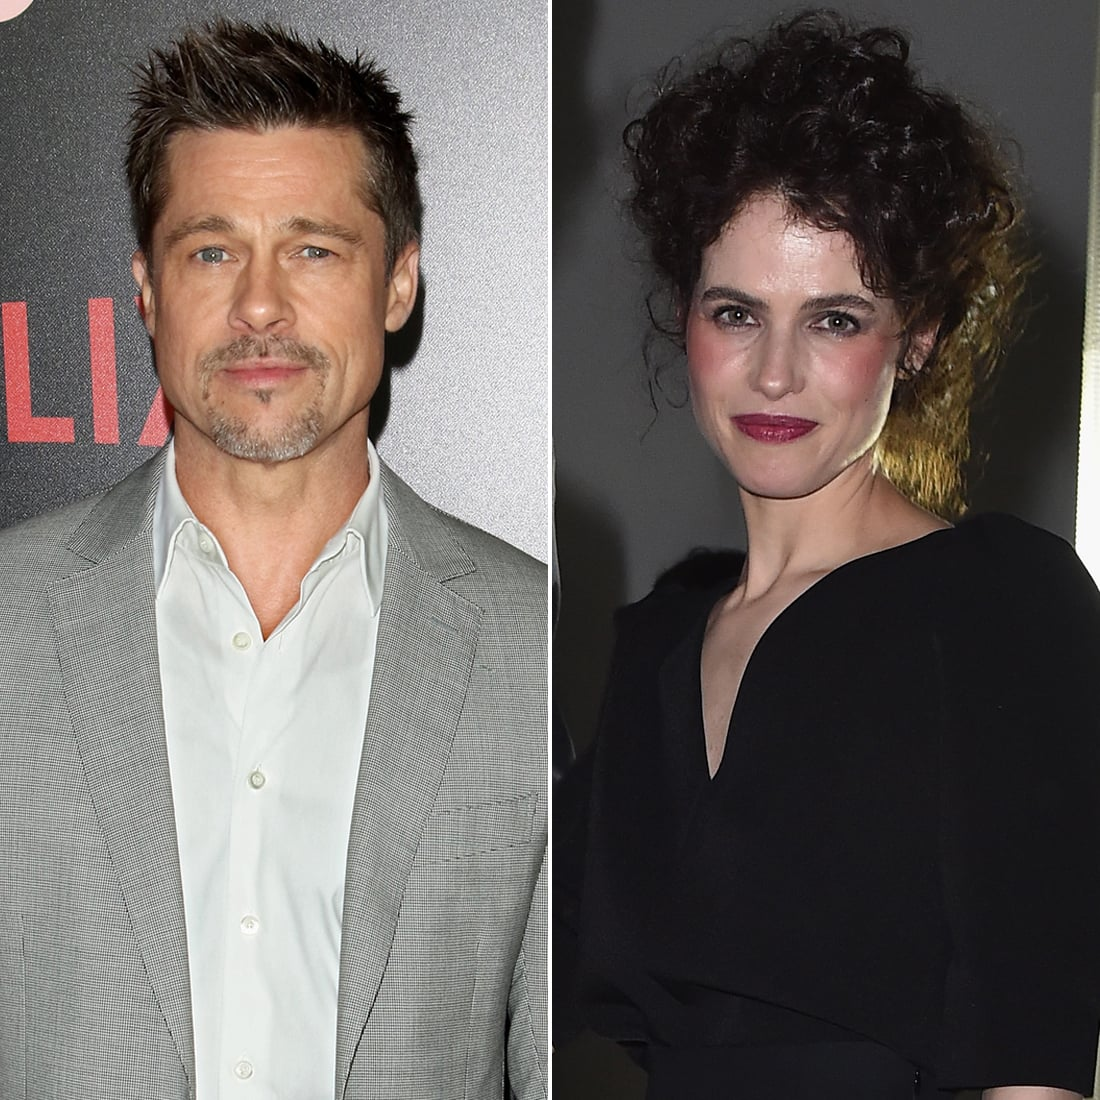 Who Is Brad Pitt Datin...